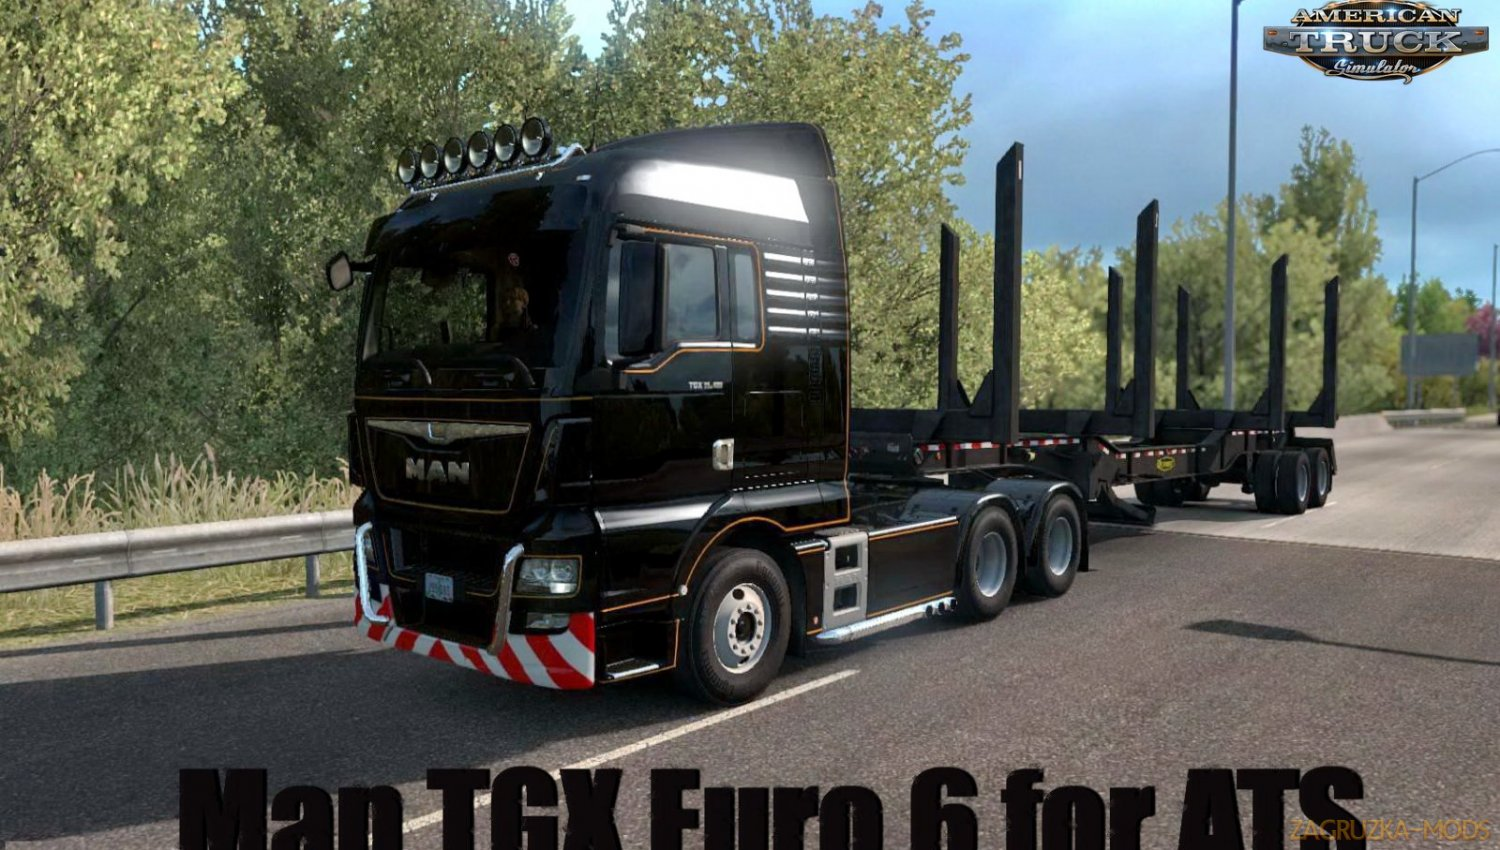 Man TGX Euro 6 + Interior v1.2 (1.37.x) for ATS